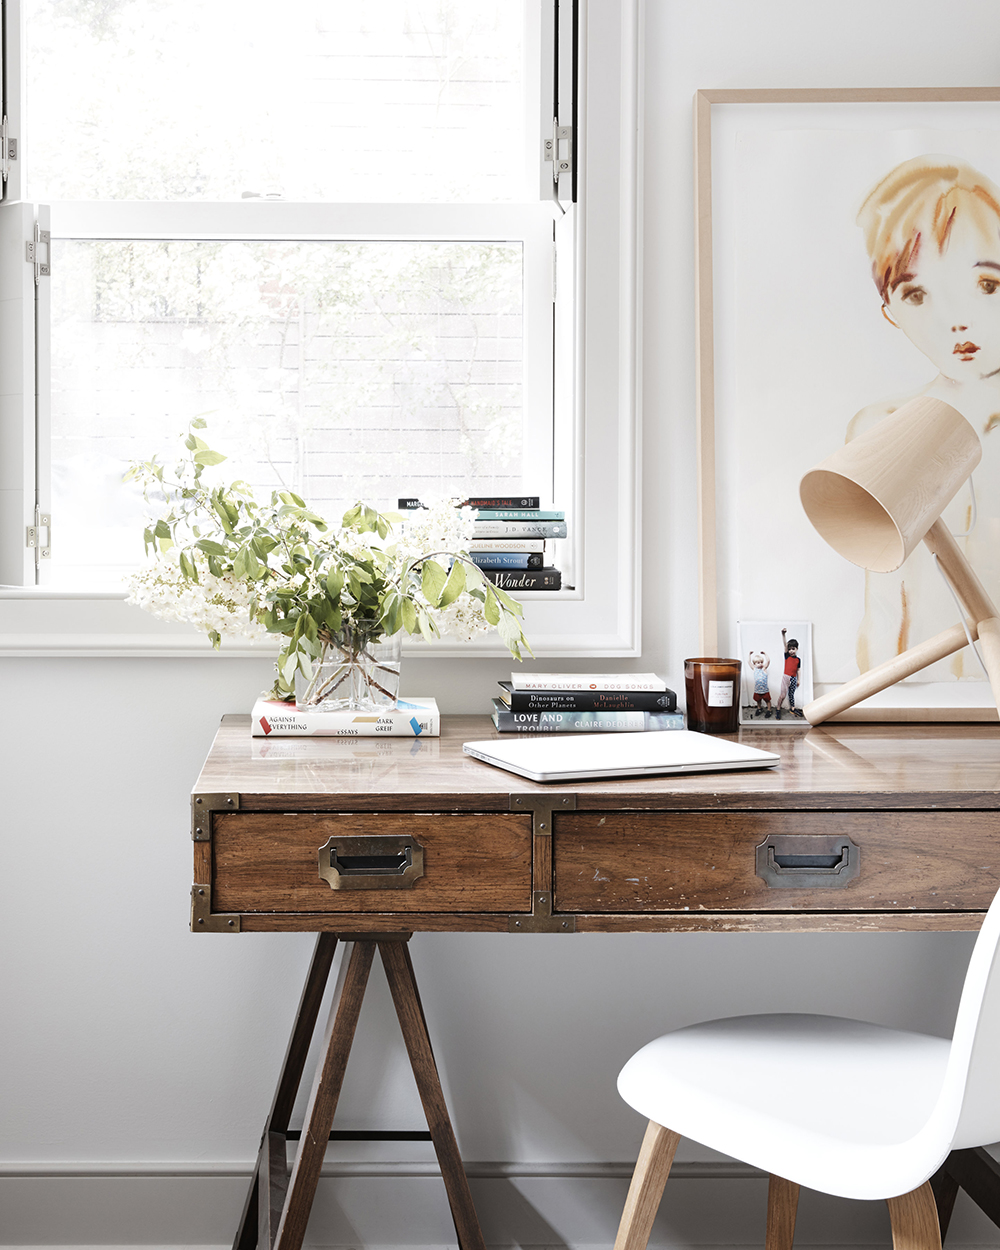 f253bcd77 Years ago, with my friend Jenny Komenda's help, we found my beloved desk on  eBay. Since then, we've been hooked on using eBay to find beautiful things,  ...